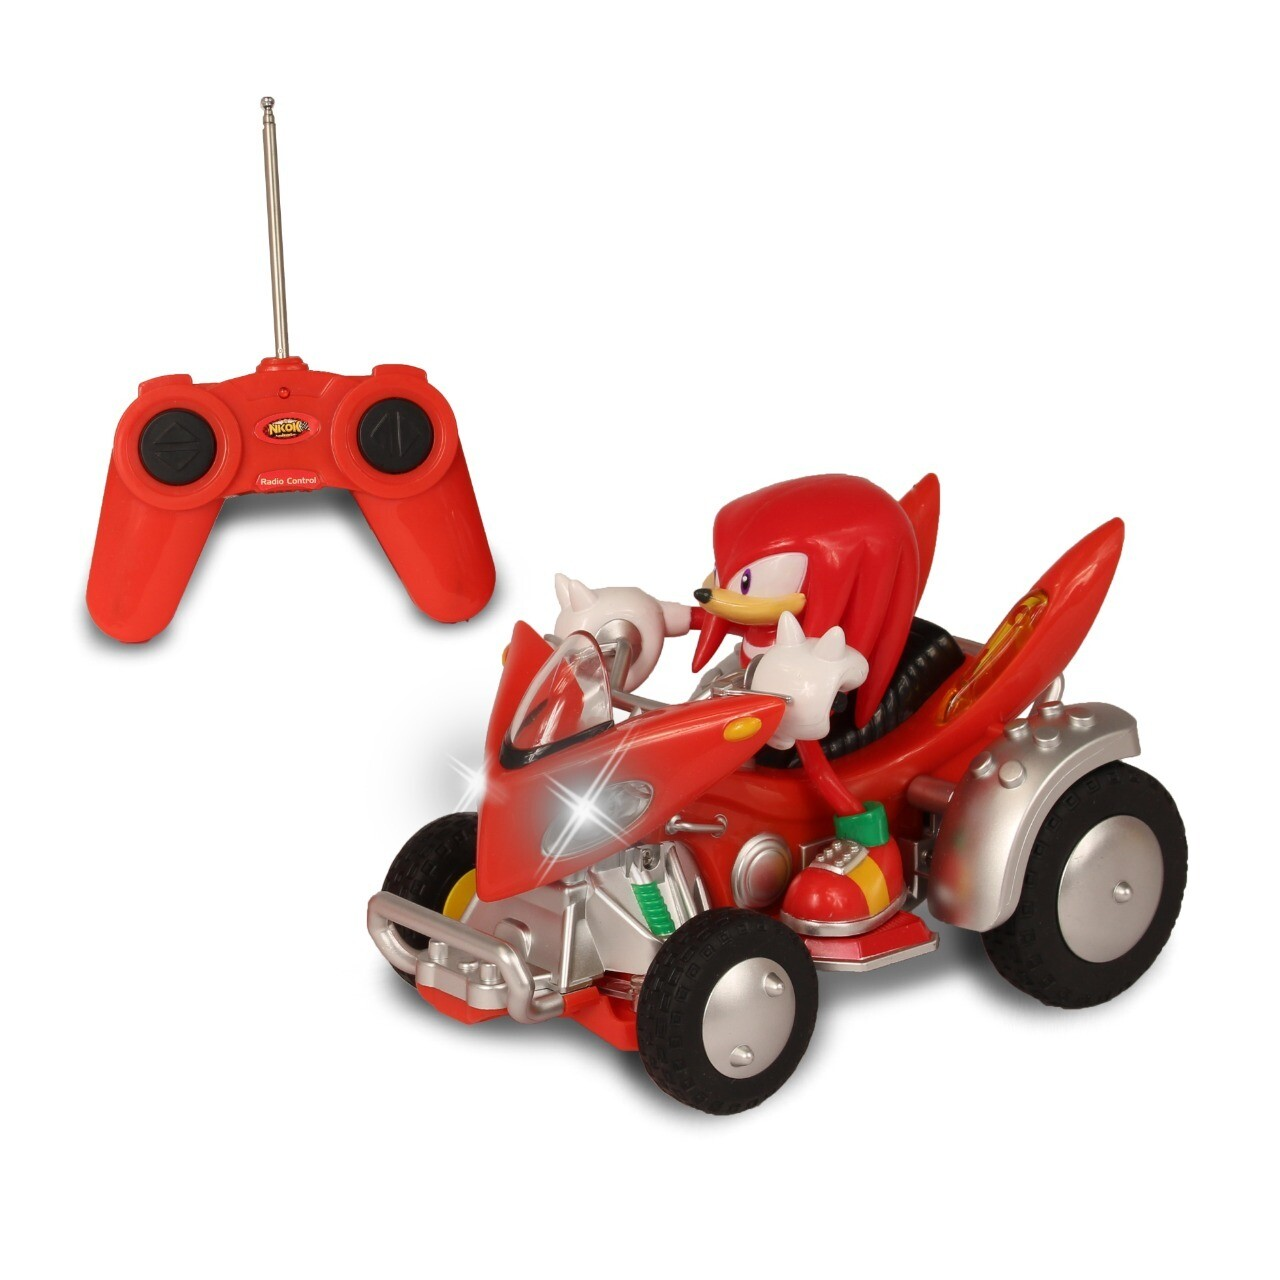 Full Funtion R/c Knuckles